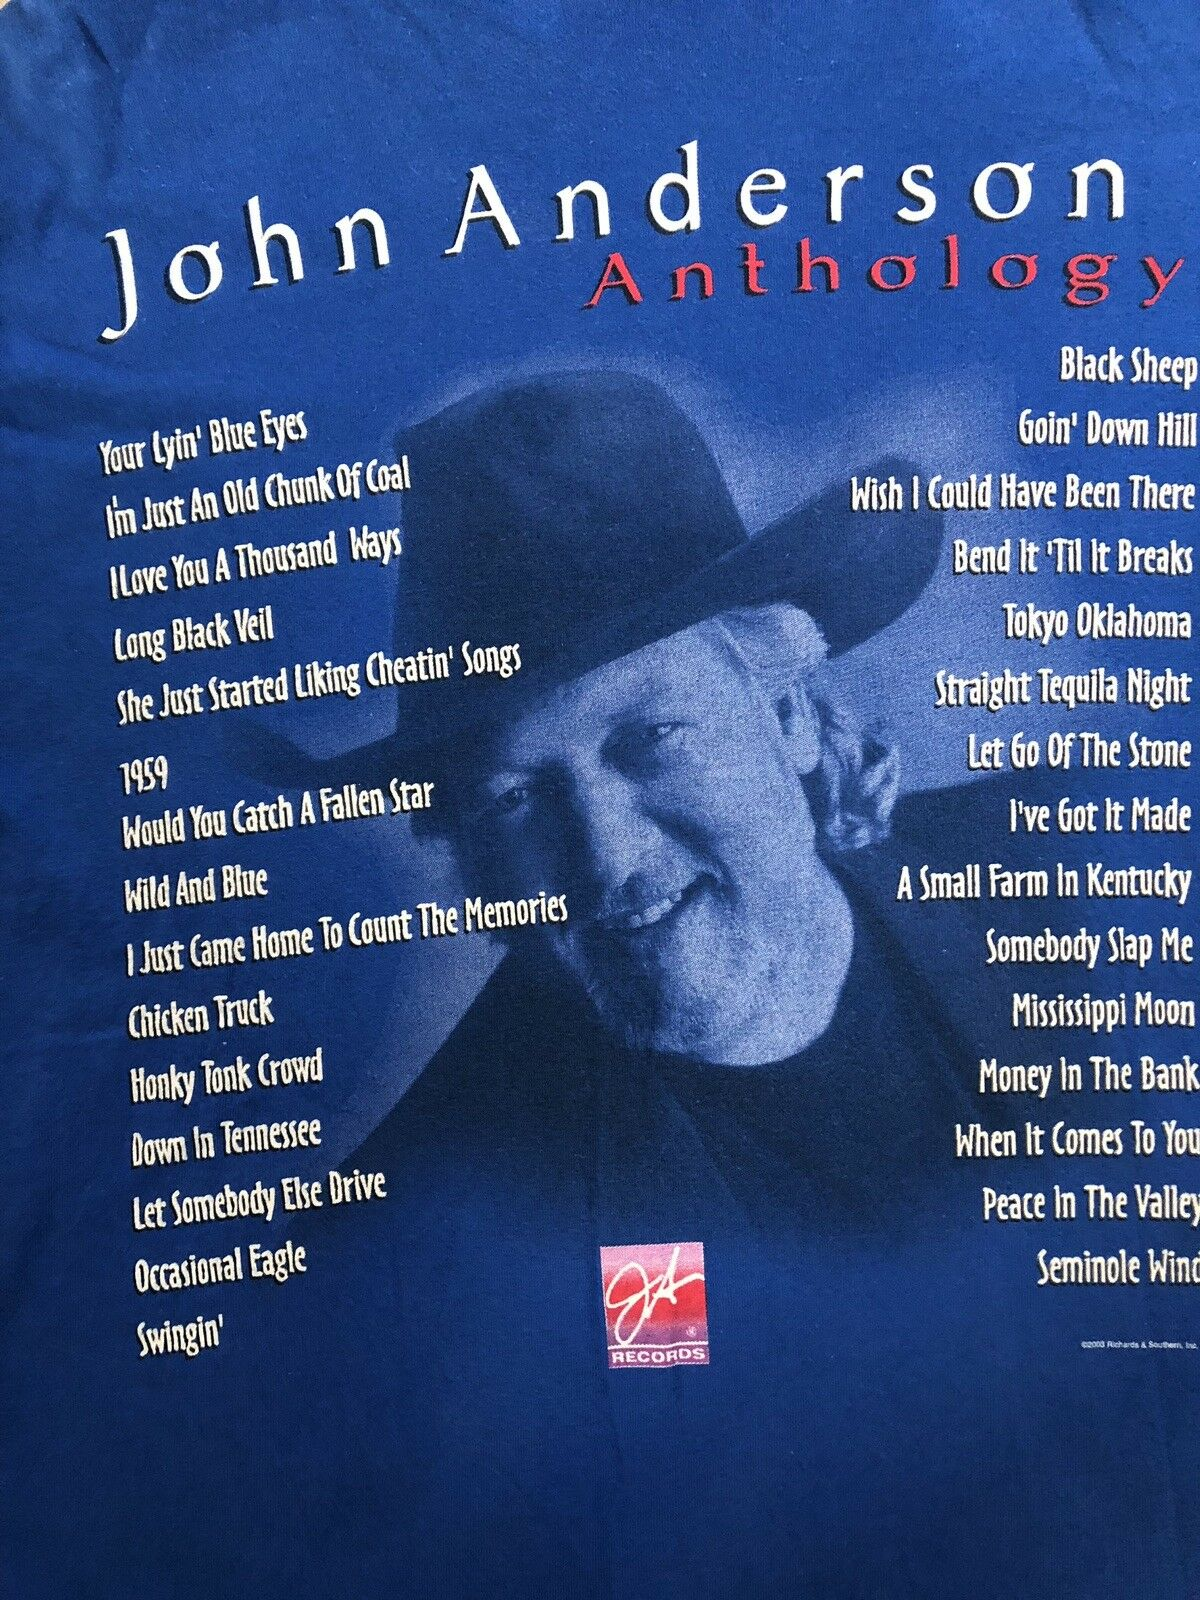 Org.2003 Legendary Country Singer John Anderson Anthology Album RARE T-shirt L